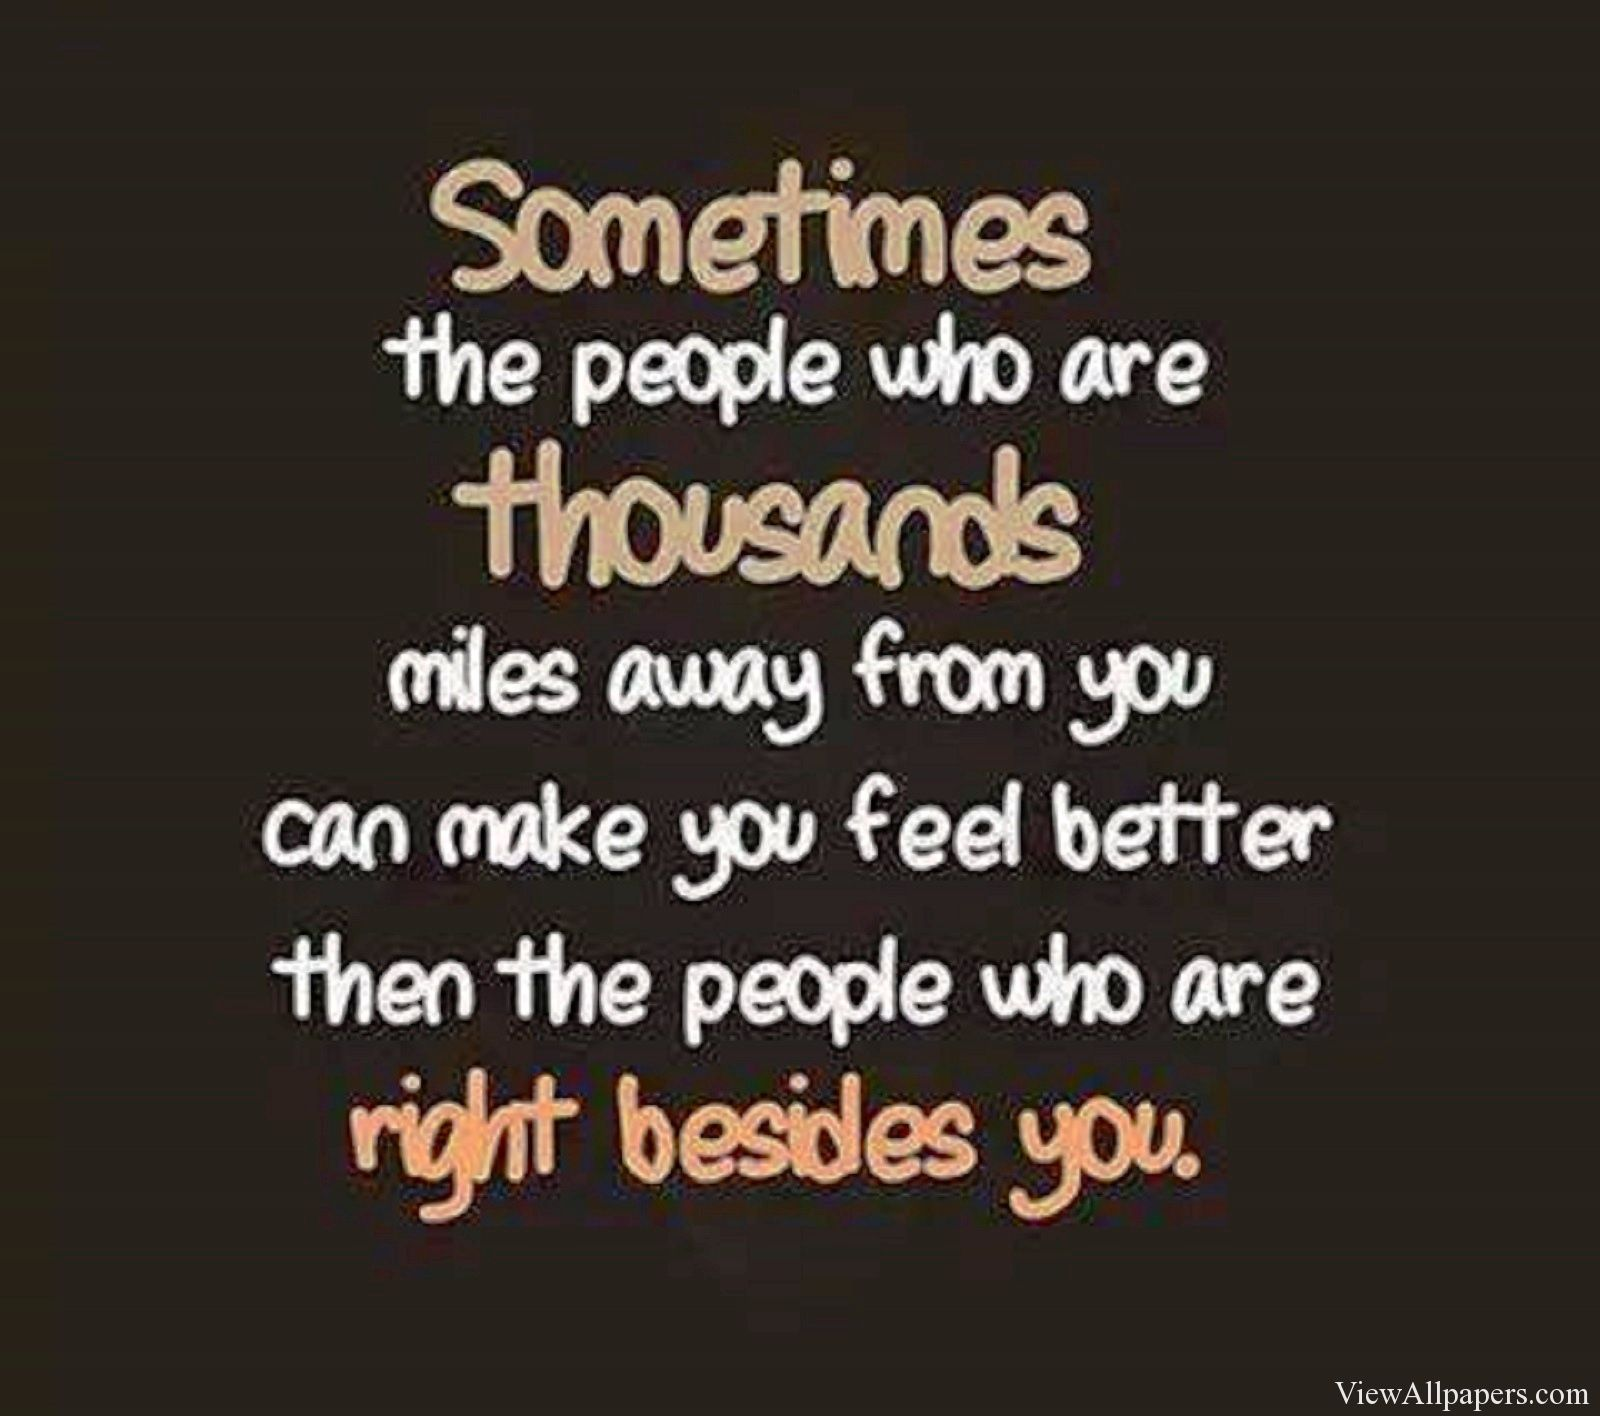 Quotes About Distance Friendship Feeling Better Quotes  Viewallpapers  Pinterest